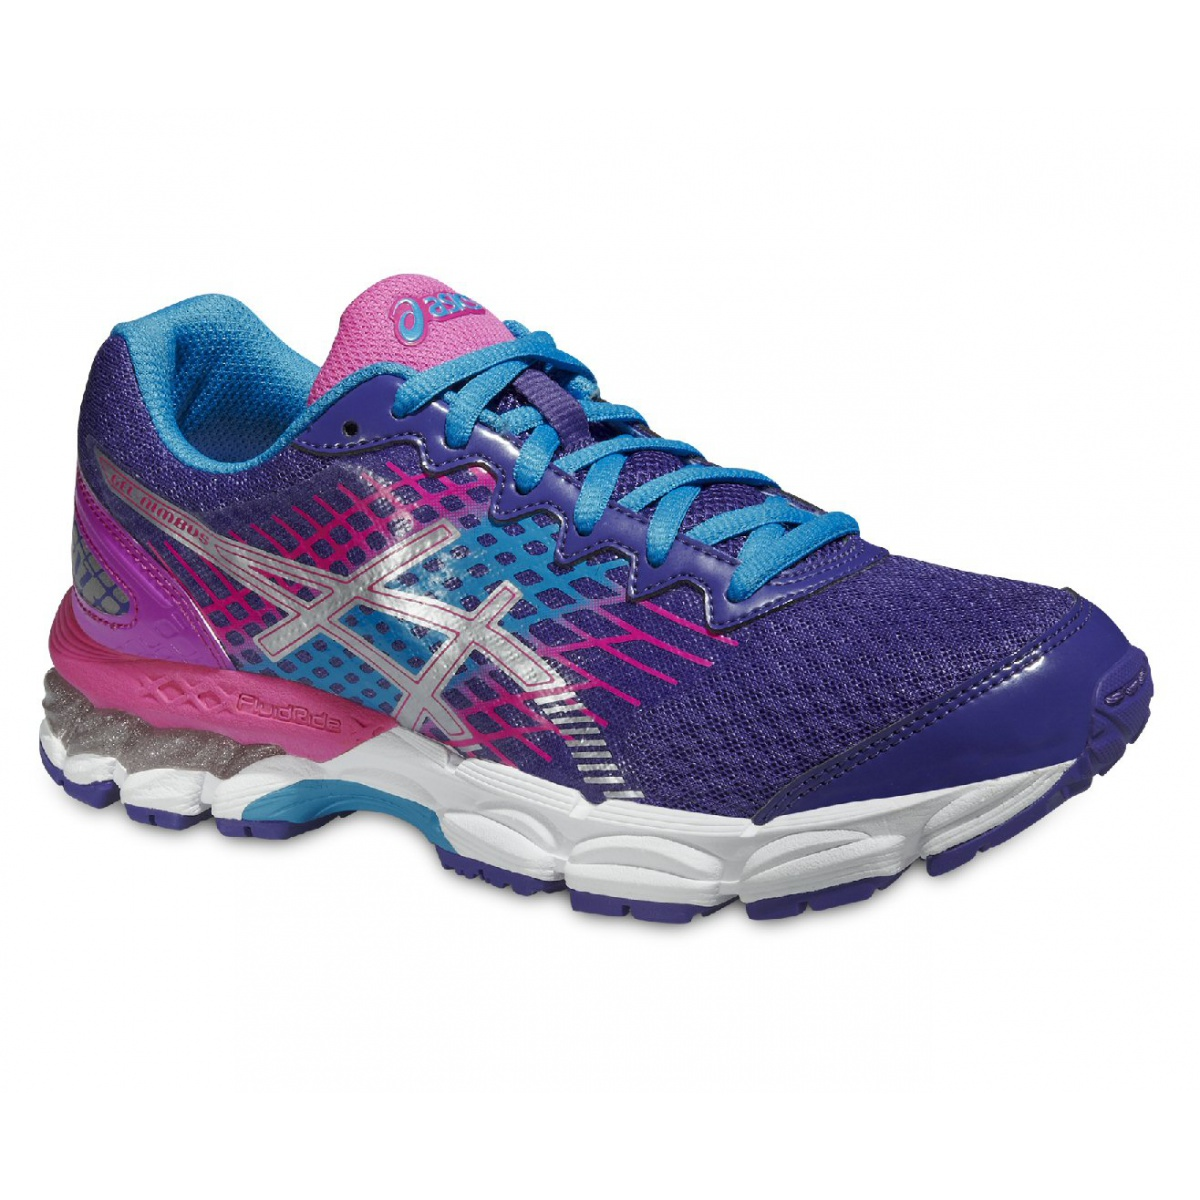 asics gel nimbus 17 blueberry laufschuhe kinder. Black Bedroom Furniture Sets. Home Design Ideas